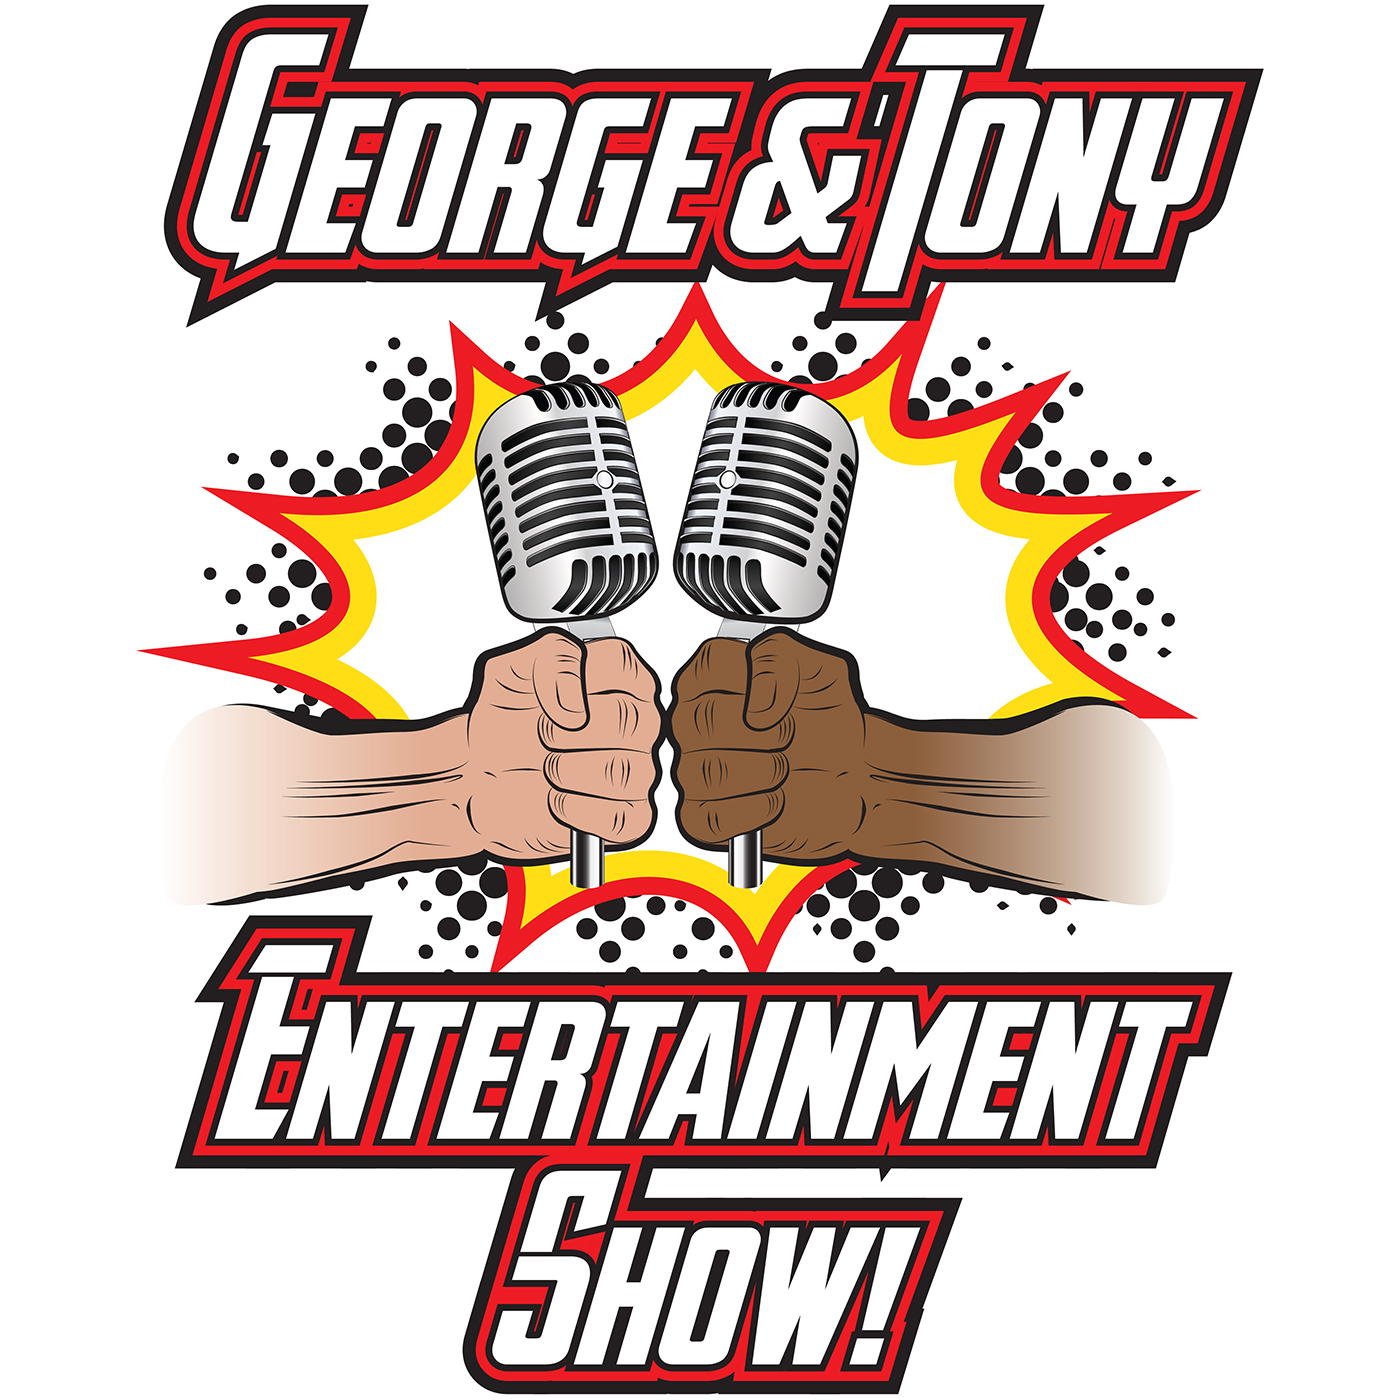 George and Tony Entertainment Show #91